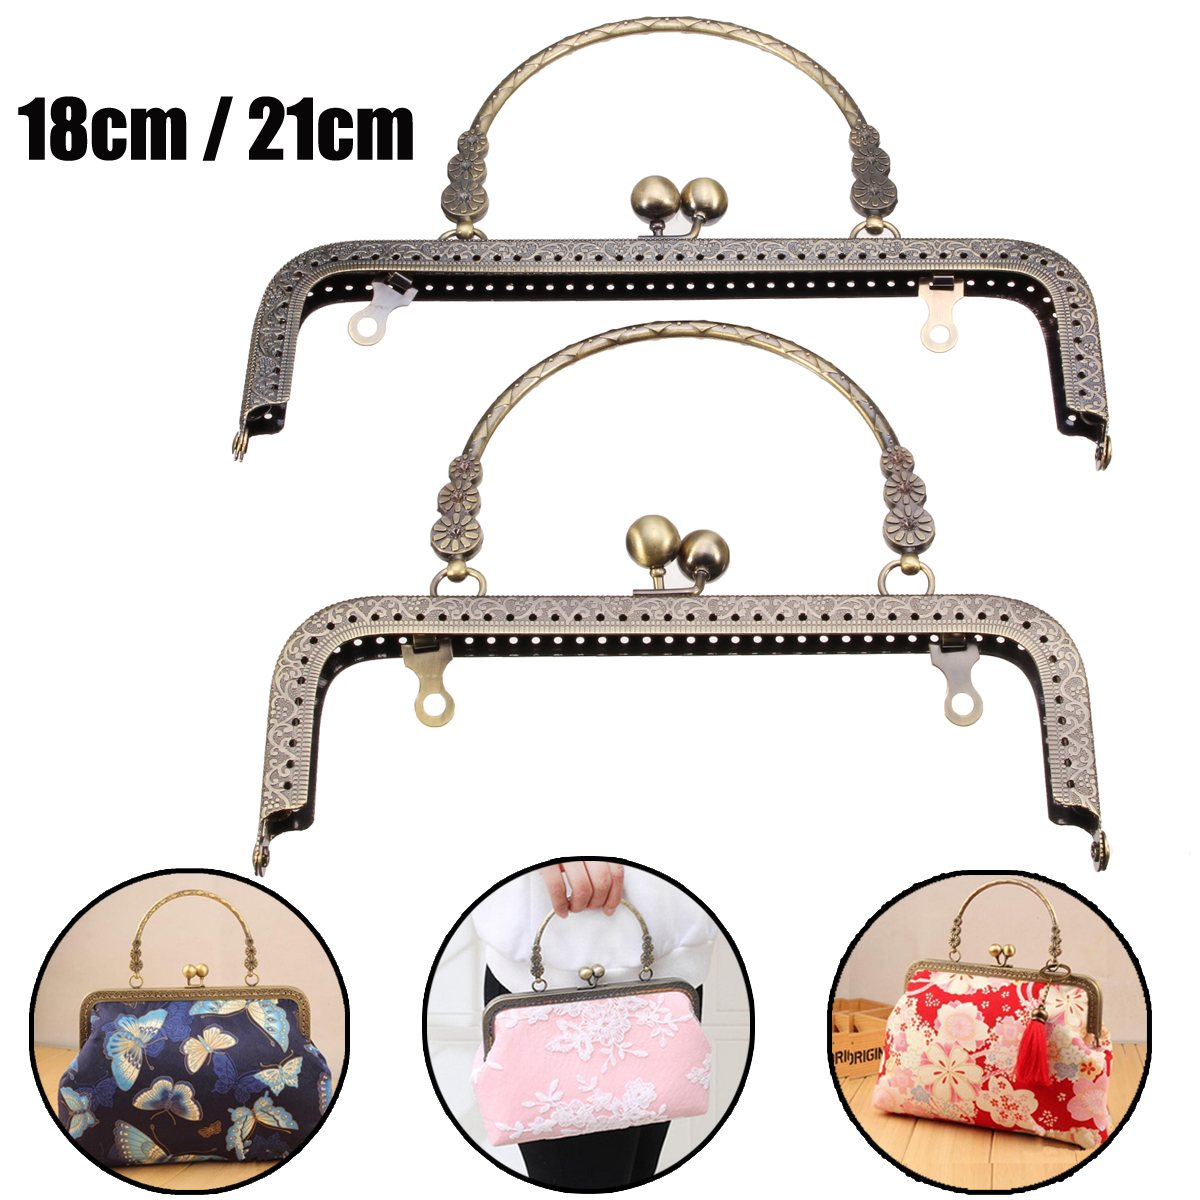 AEQUEEN 18/21CM Vintage Kiss Clasp Lock Arch Frame For Handbag Handle Purse Lock Coin Bag Accessories Parts Metal Handle